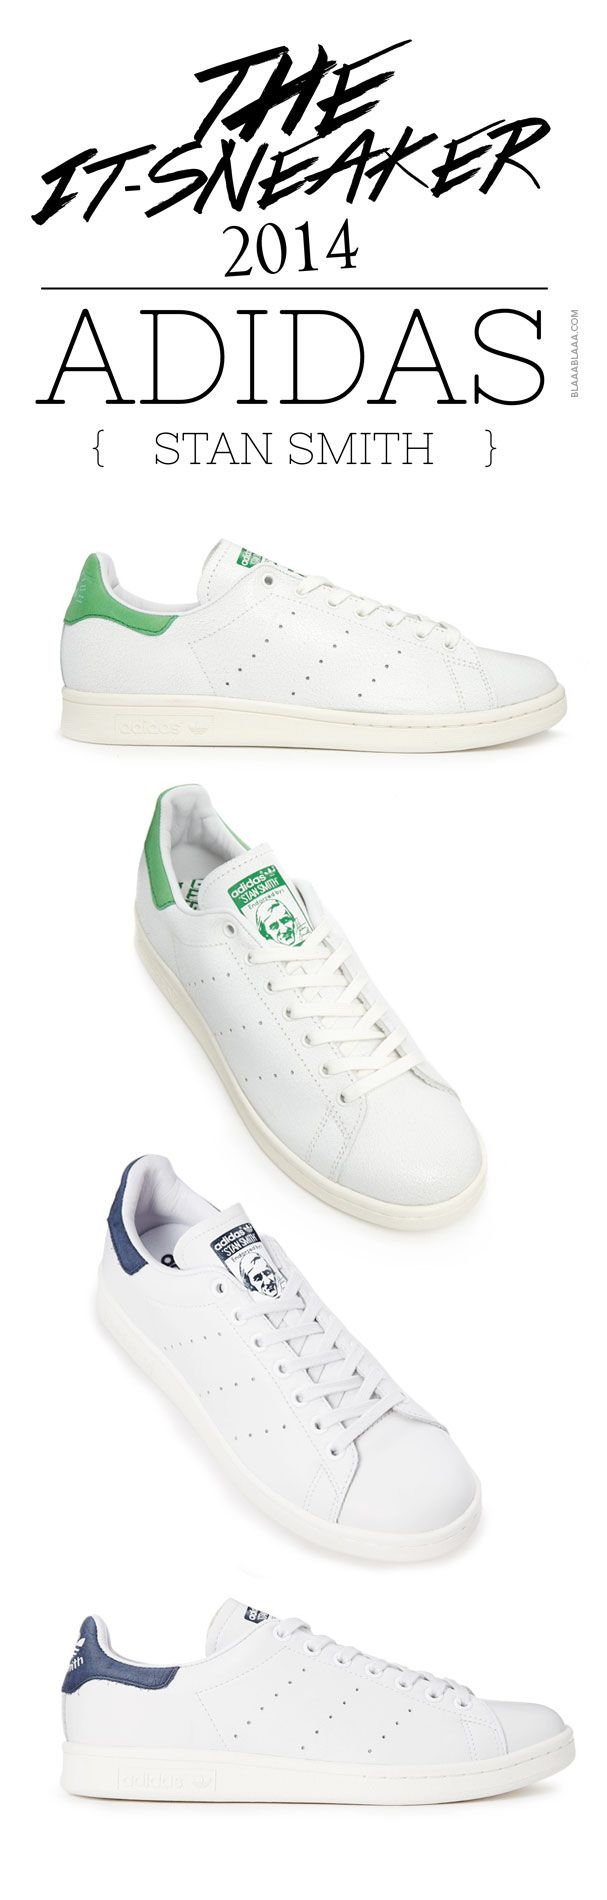 Der It-Sneaker 2014:  adidas Stan Smith Just CLICK here ... http://www.blaaablaaa.com/2014/01/30/der-it-sneaker-2014-adidas-stan-smith/